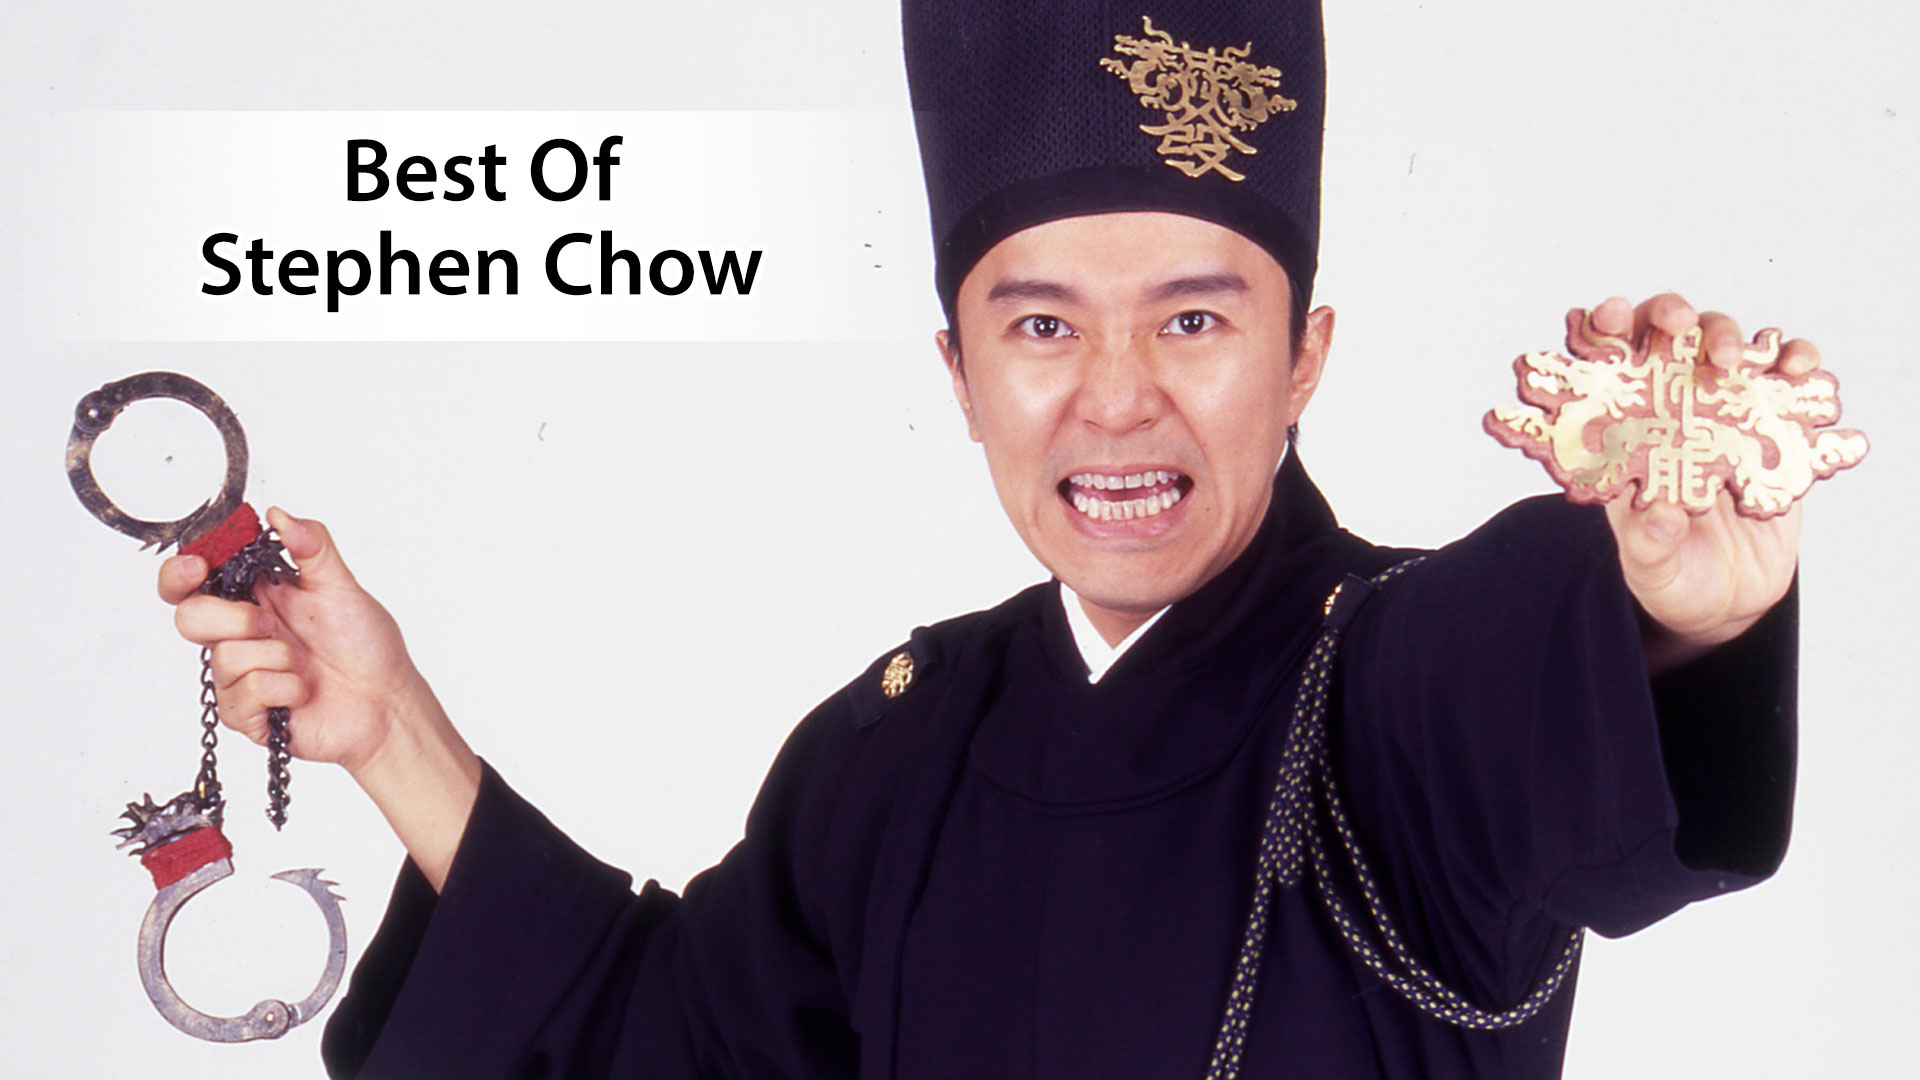 BEST OF STEPHEN CHOW